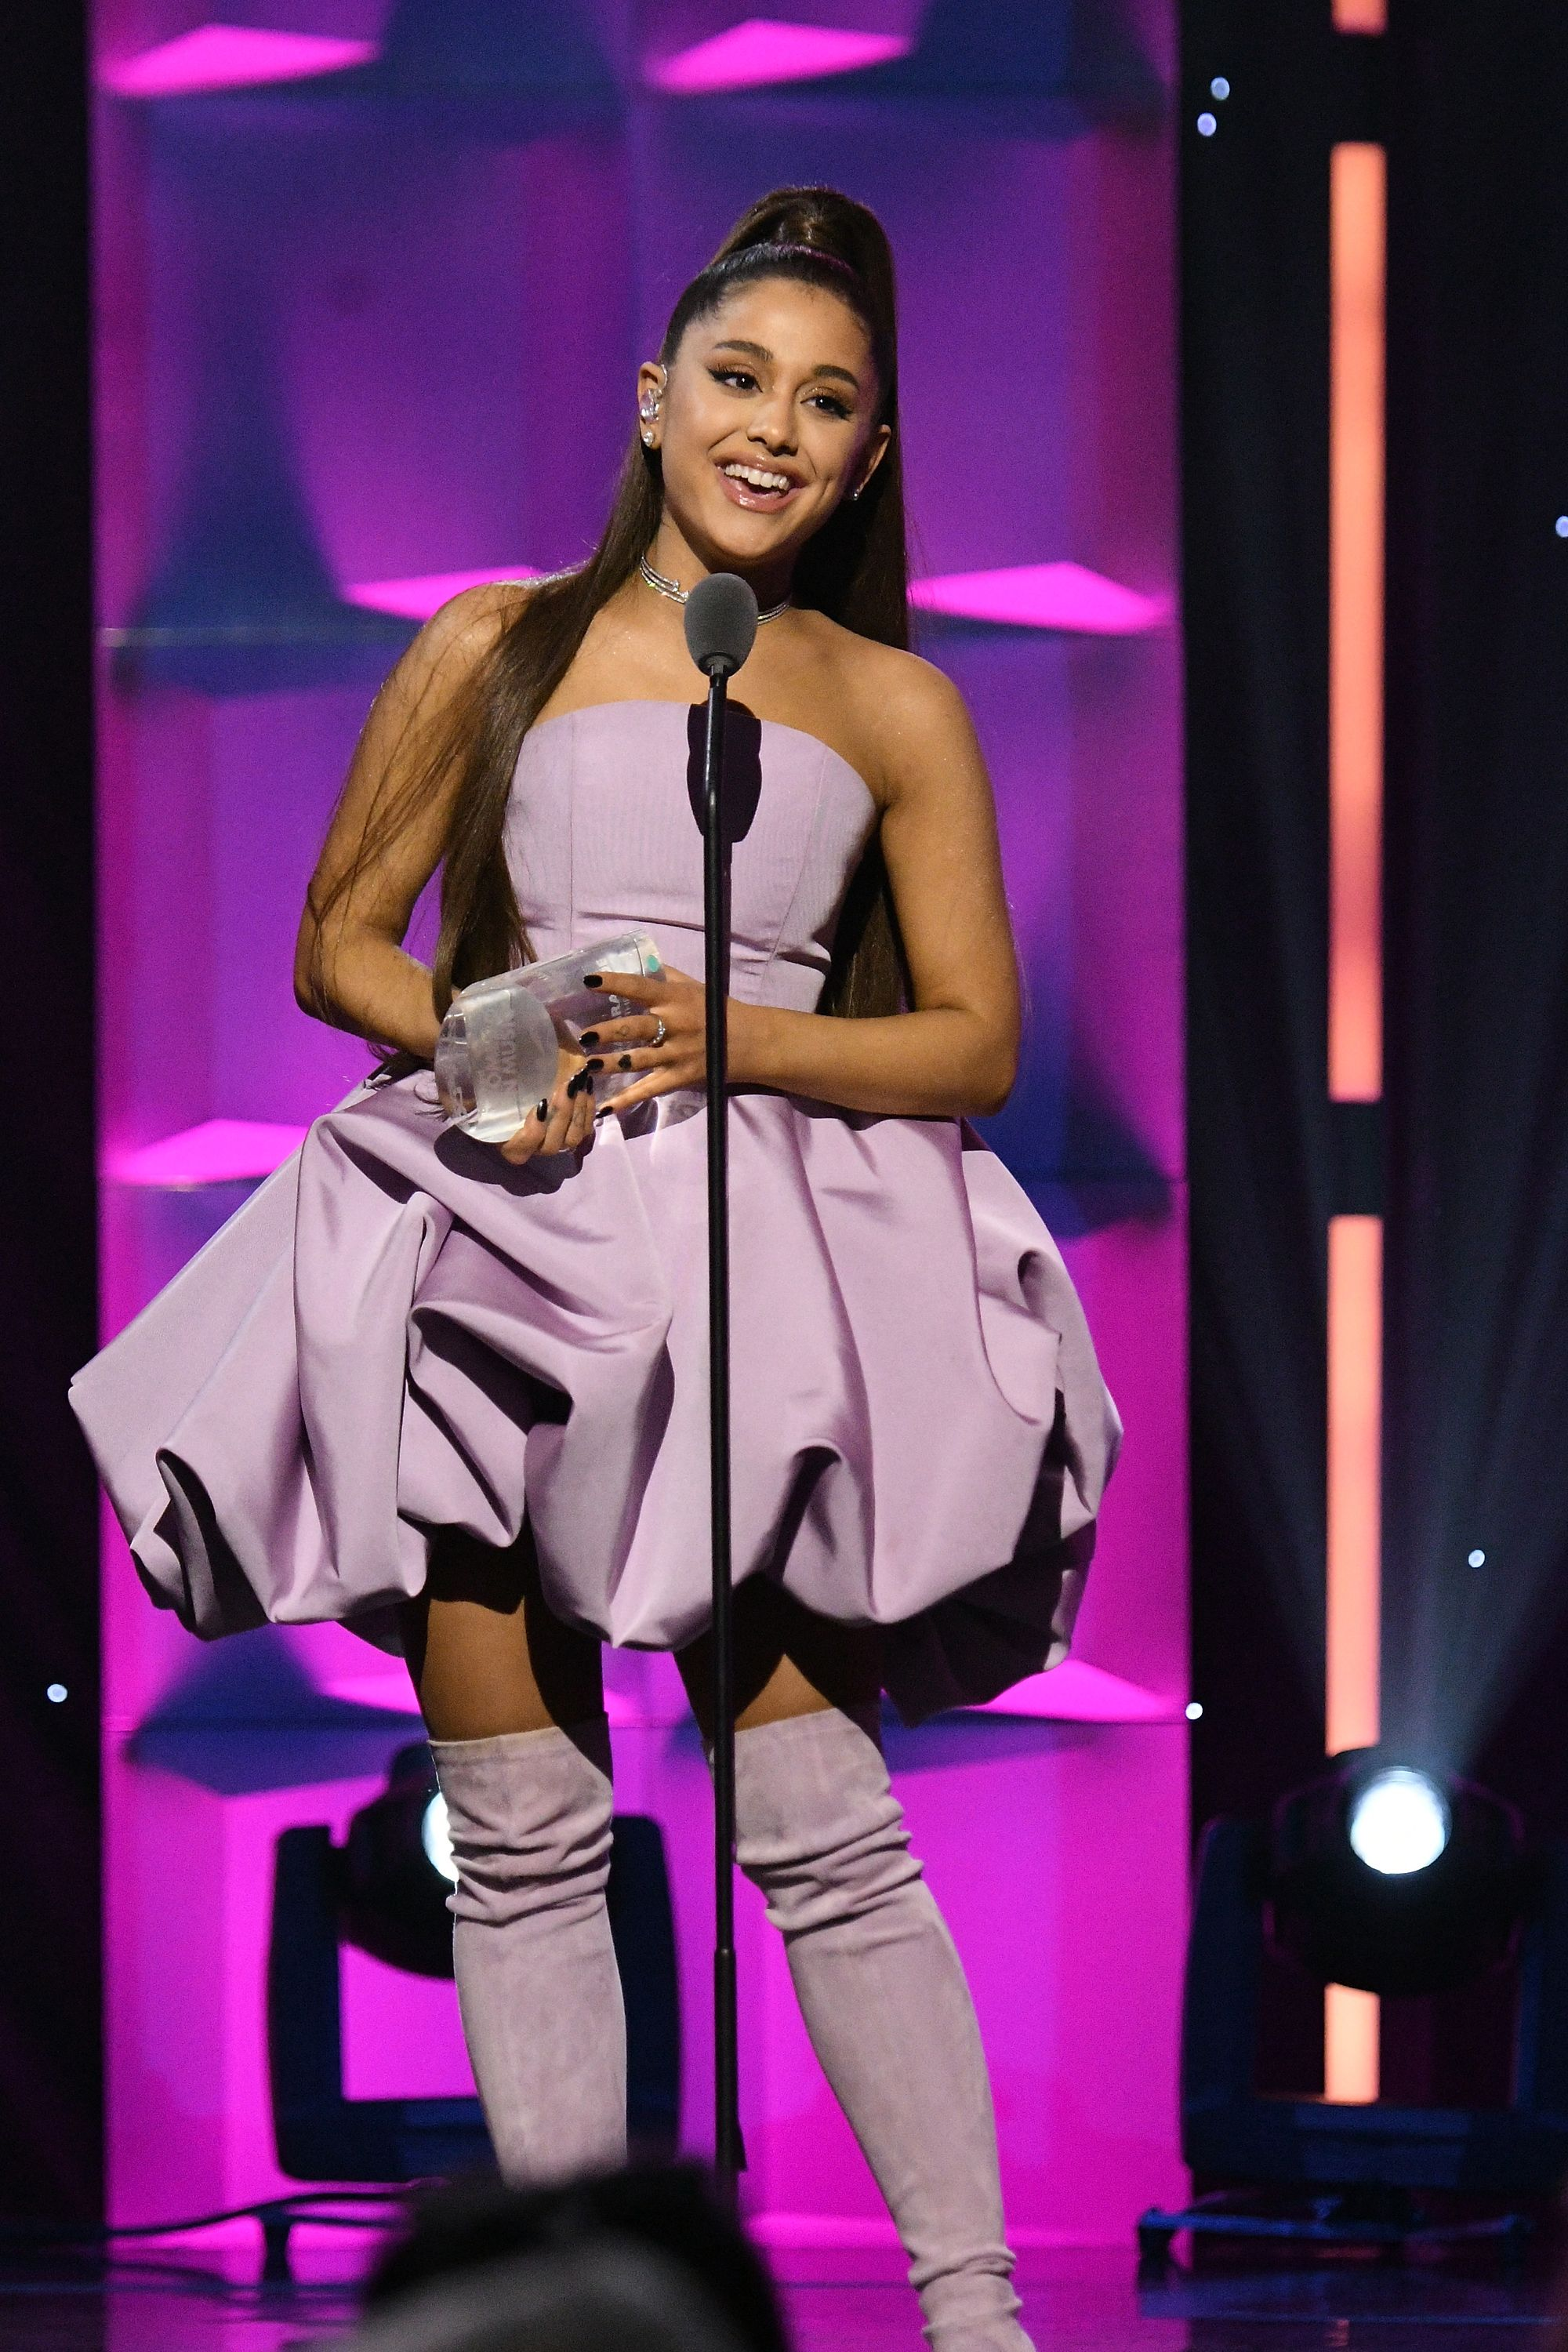 ariana grande who is she dating